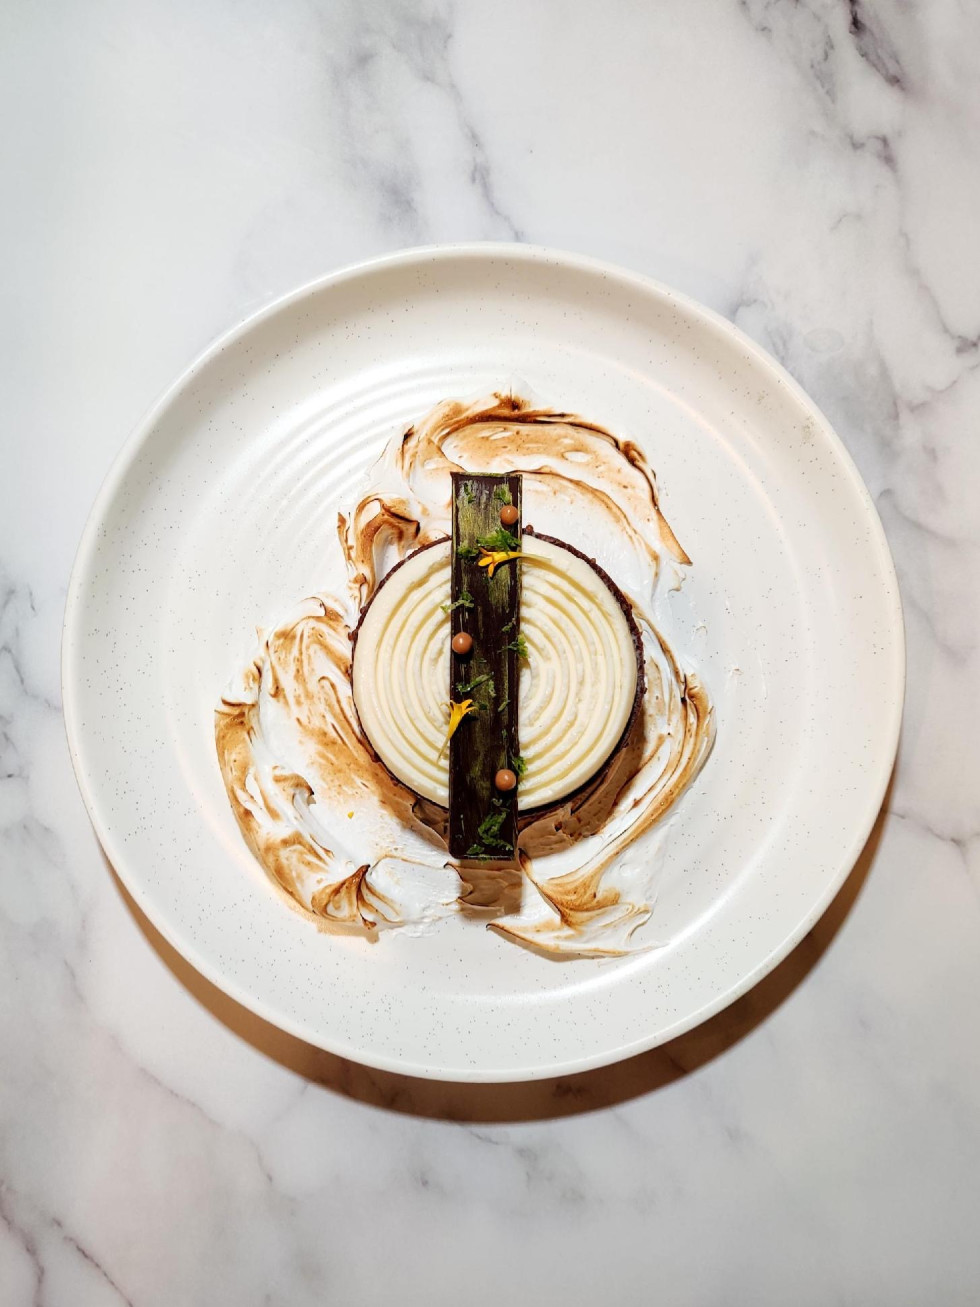 Permission Whiskey chartreuse tart